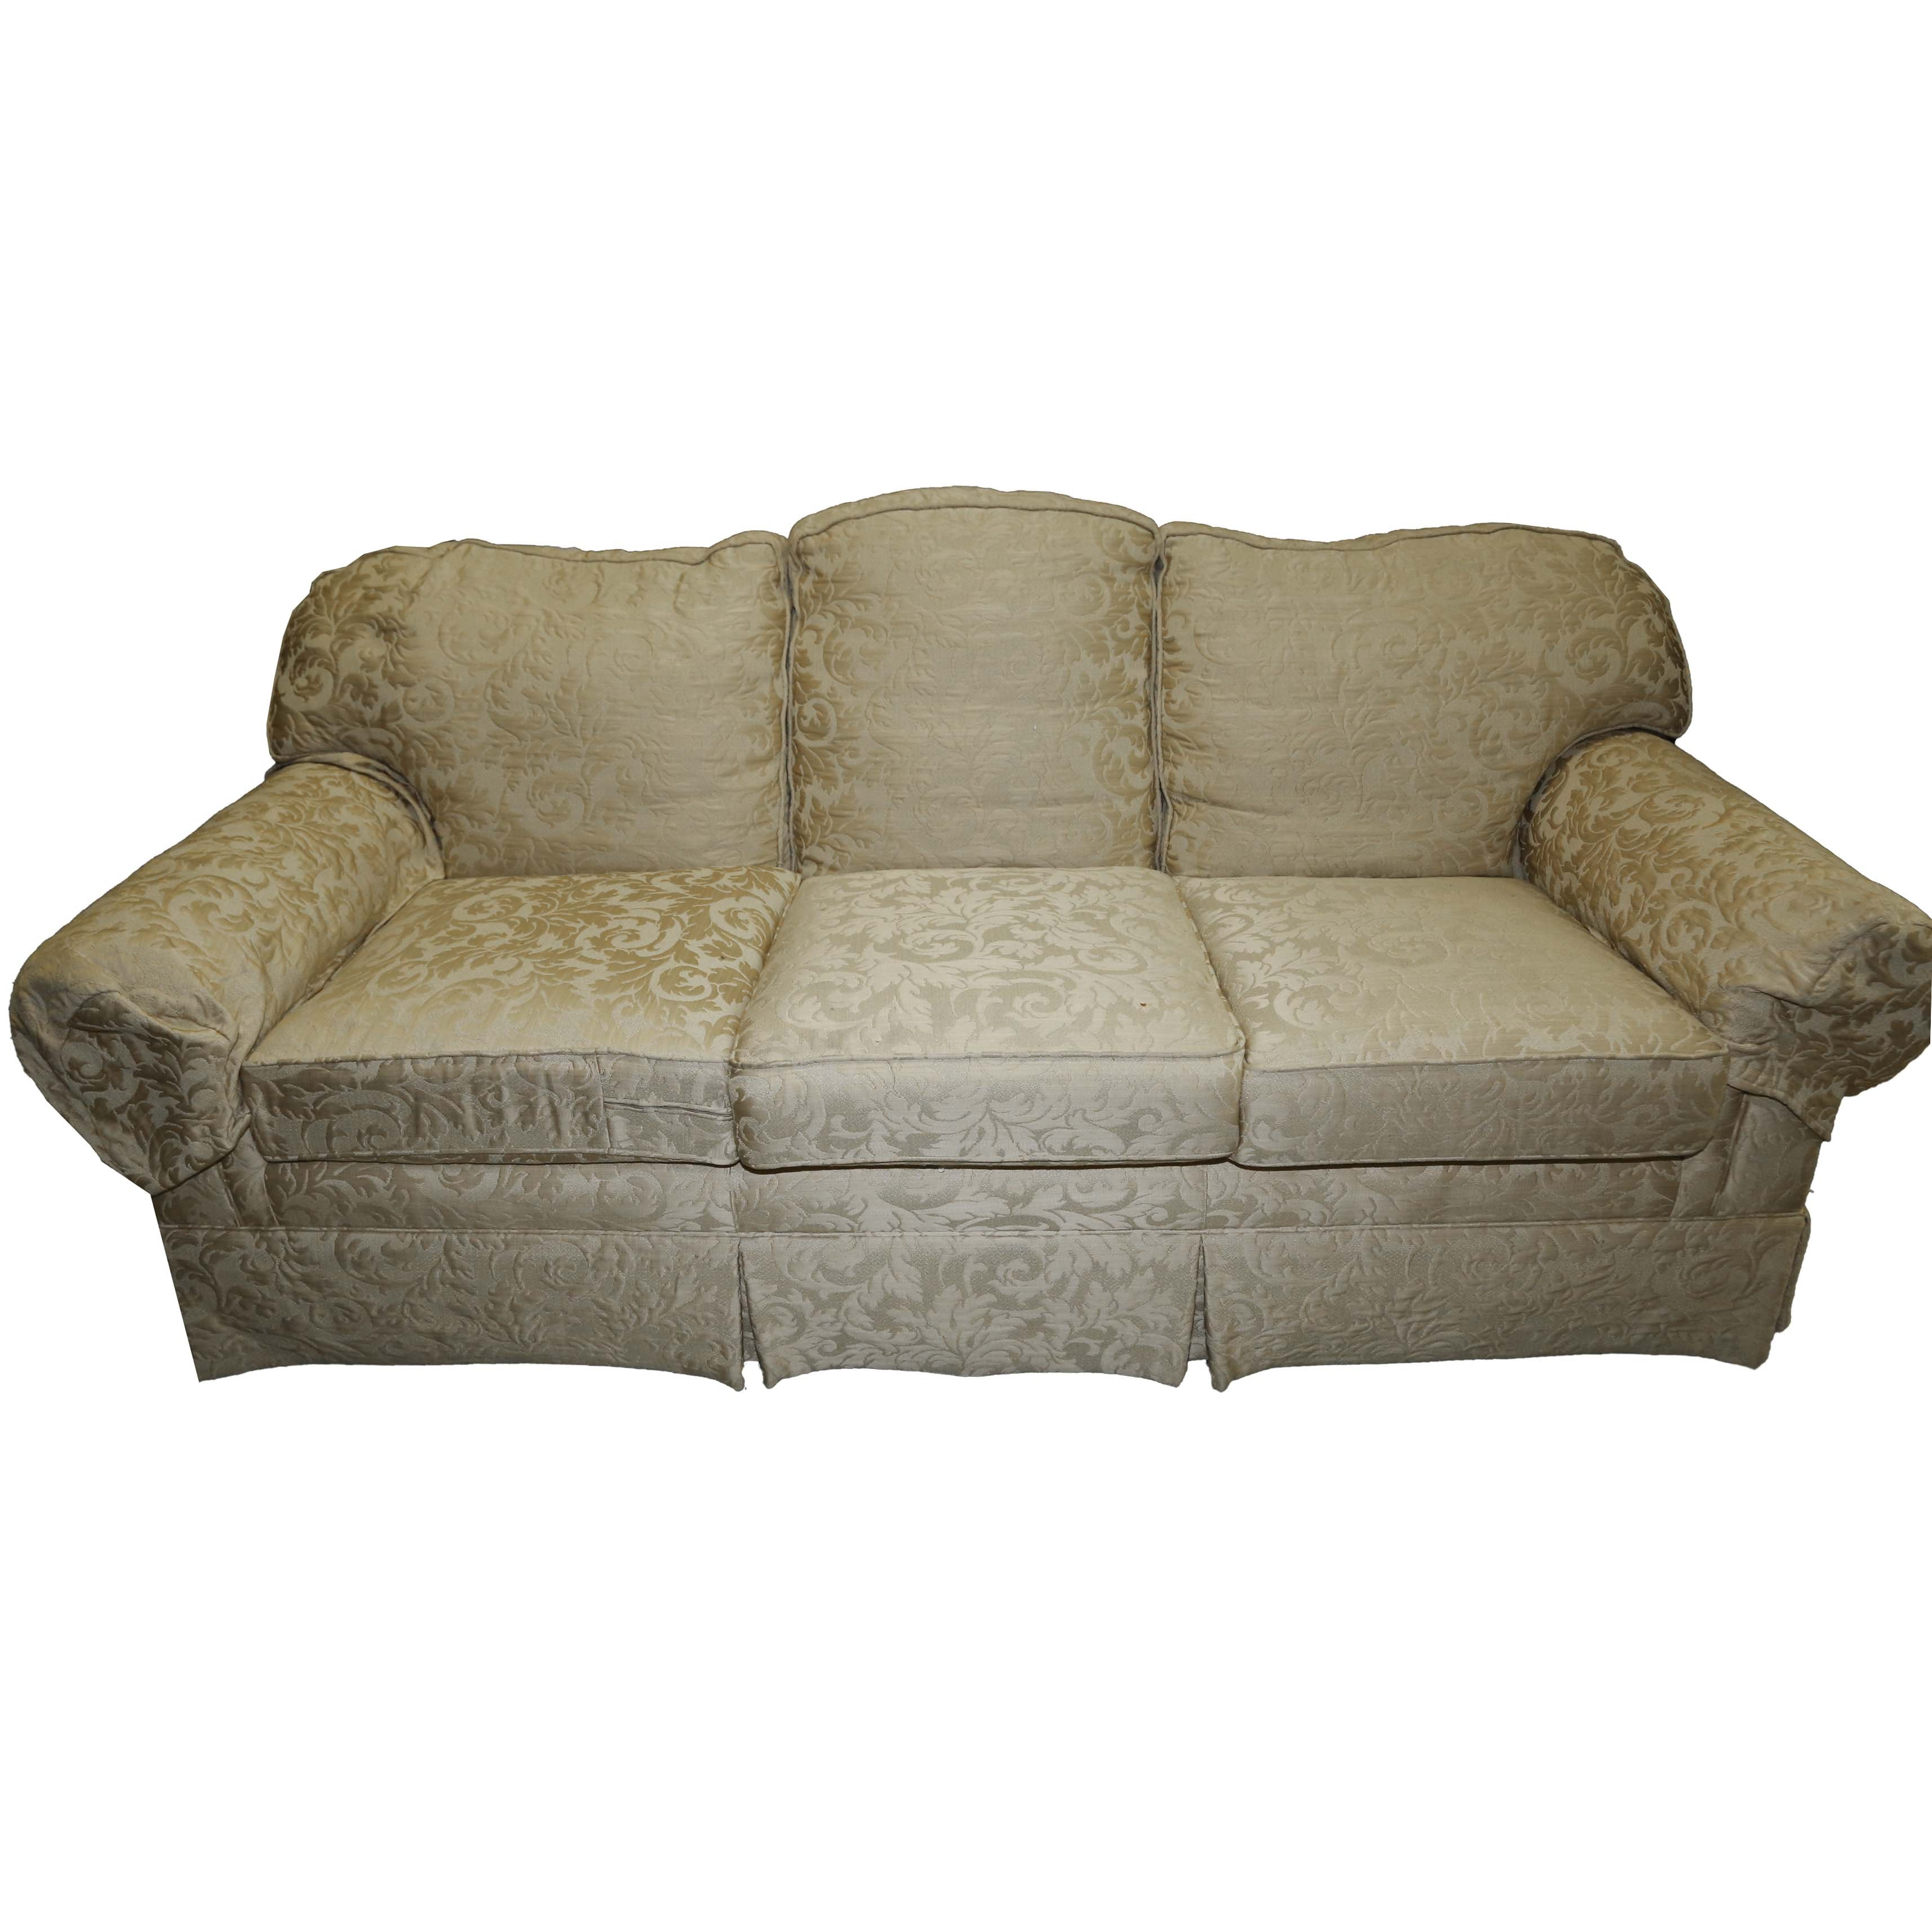 Damask Upholstered Sofa by Taylor King